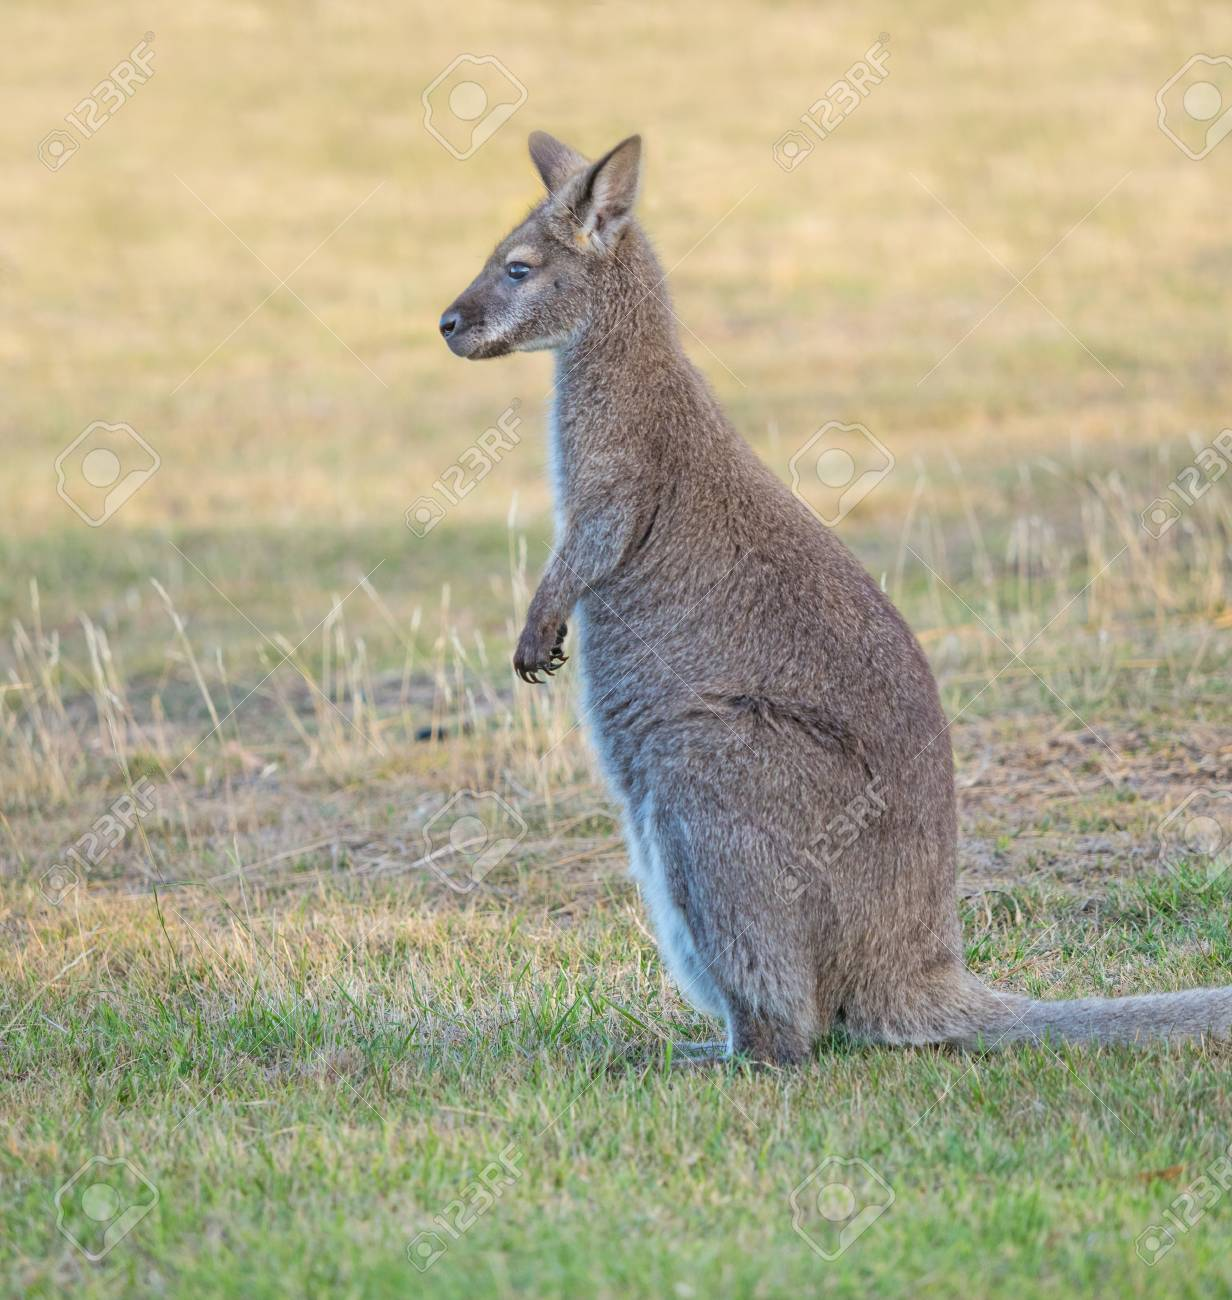 The Red Necked Wallaby Or Bennetts Wallaby Macropus Rufogriseus Stock Photo Picture And Royalty Free Image Image 119656541